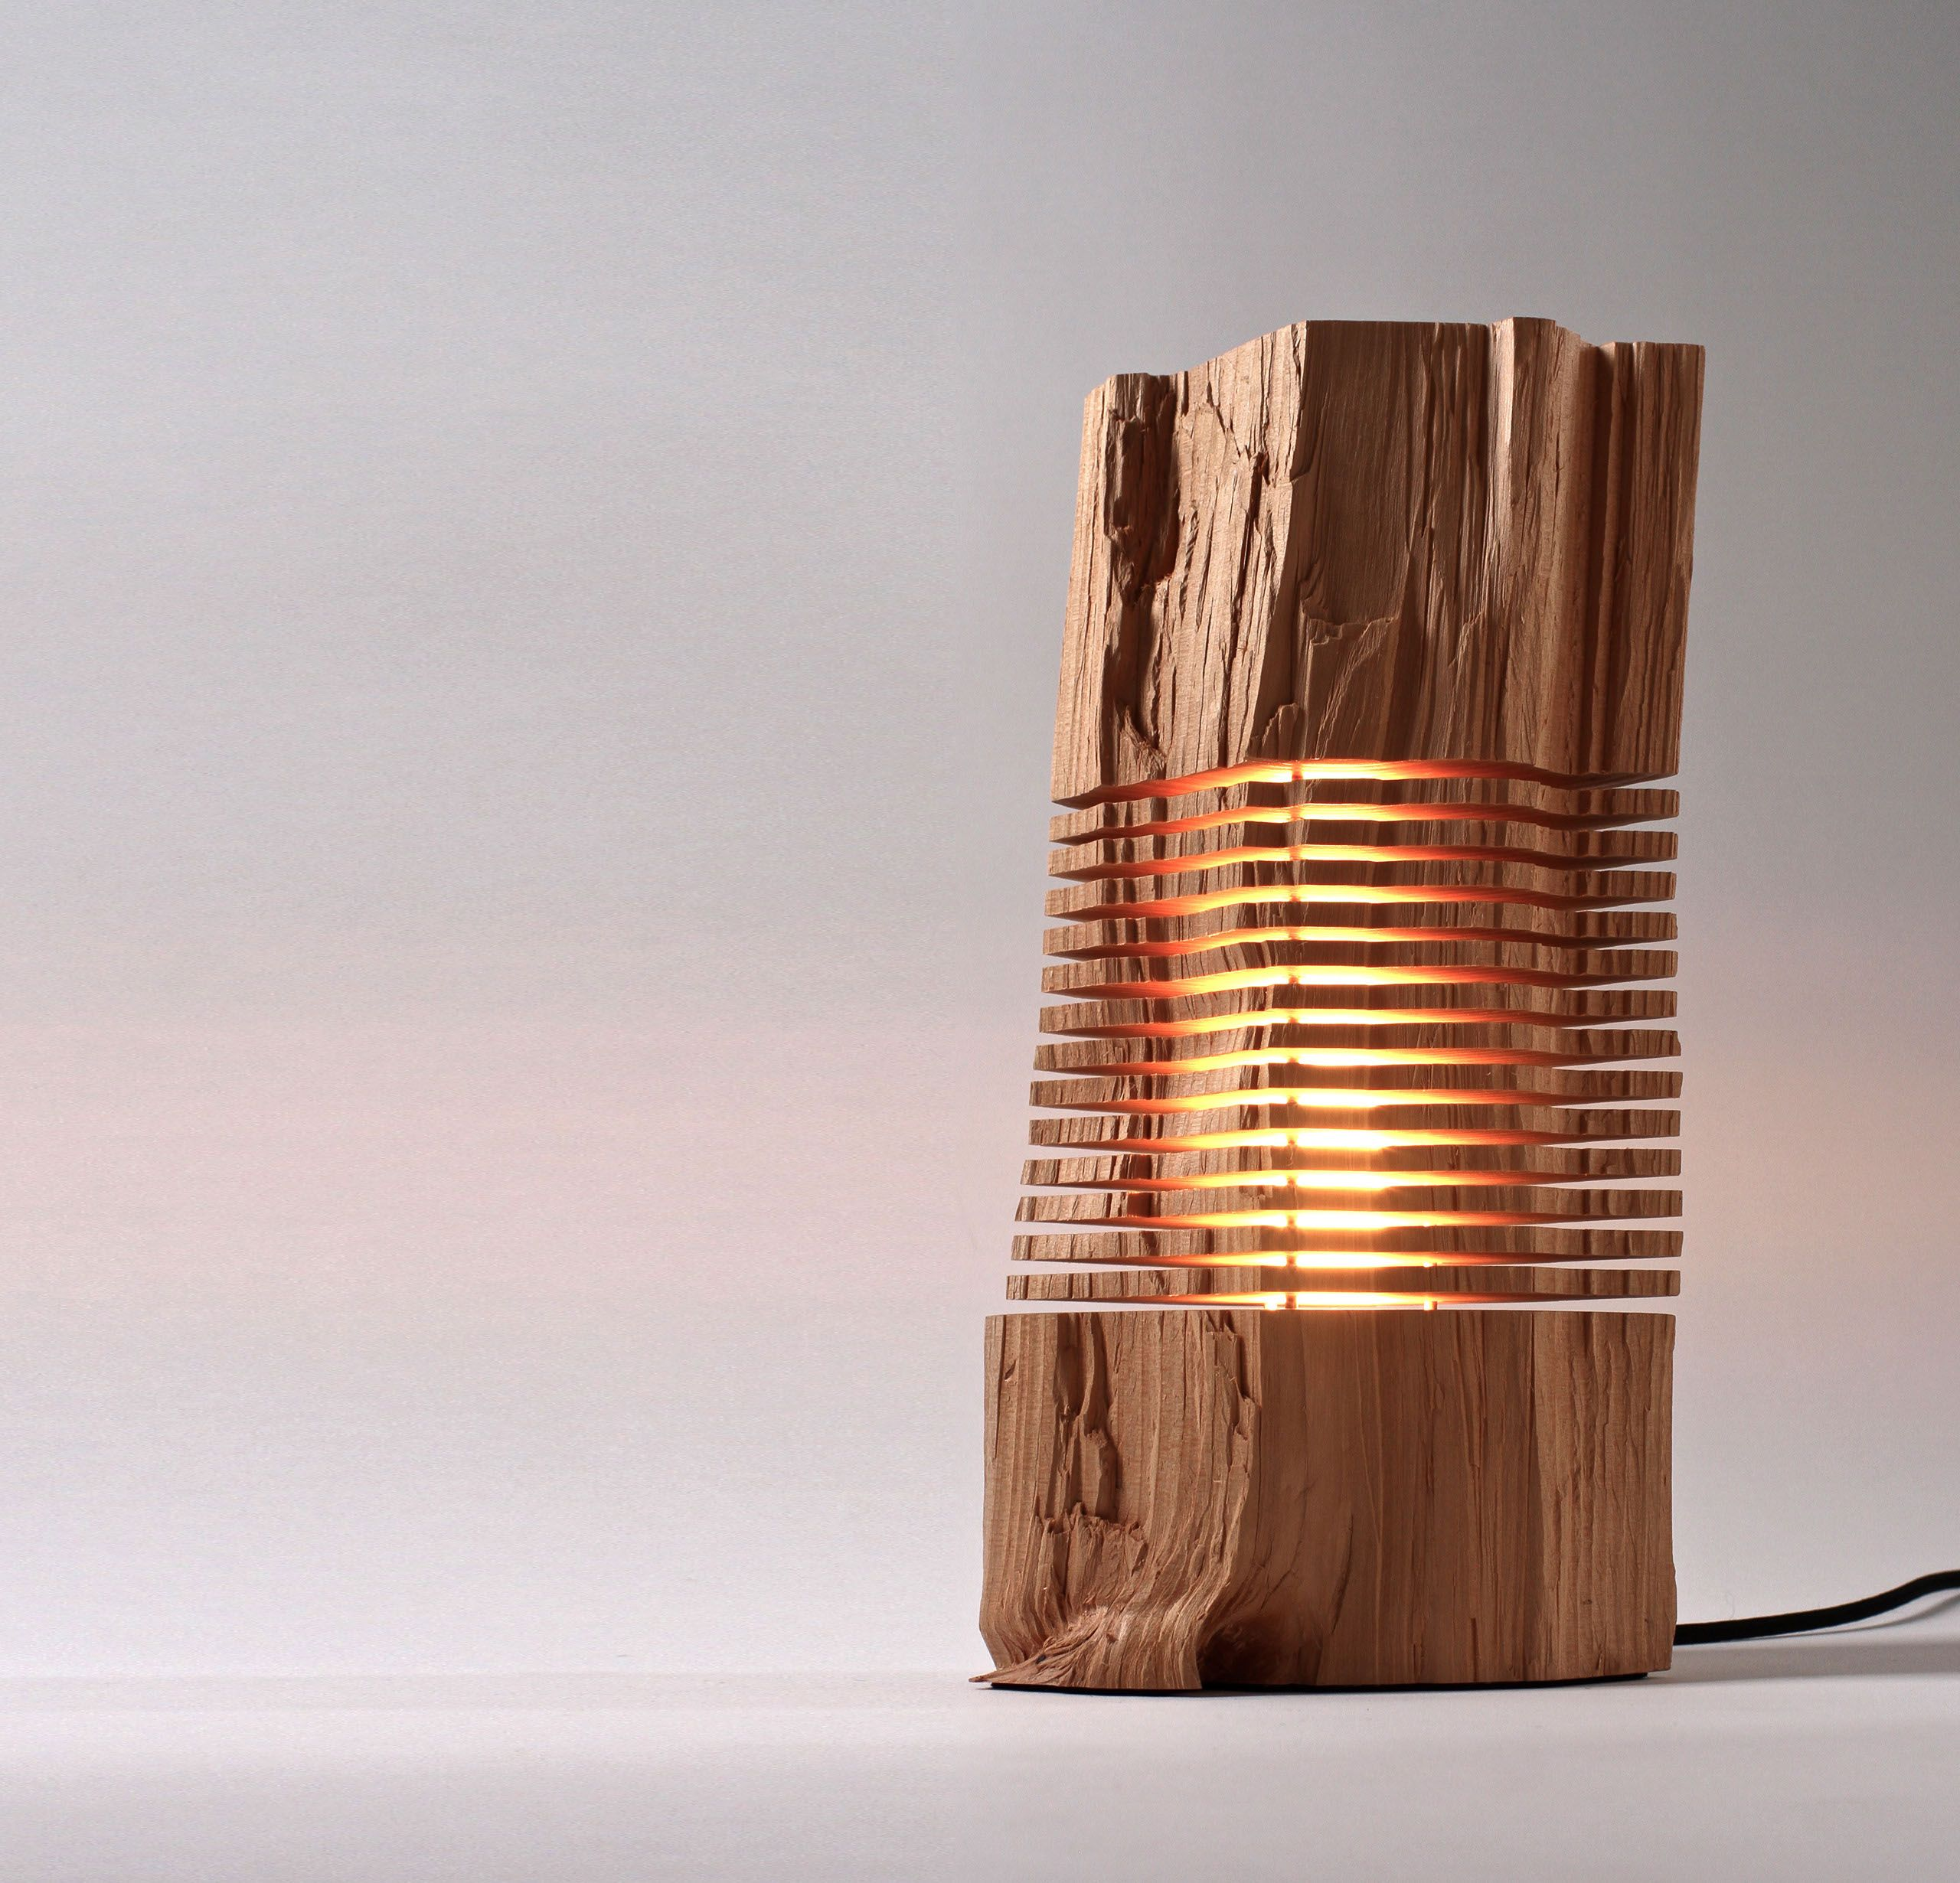 Deckenlampe Holz Design Paul Foeckler 39s Beleuchtete Skulpturen Der Quotsplit Grain